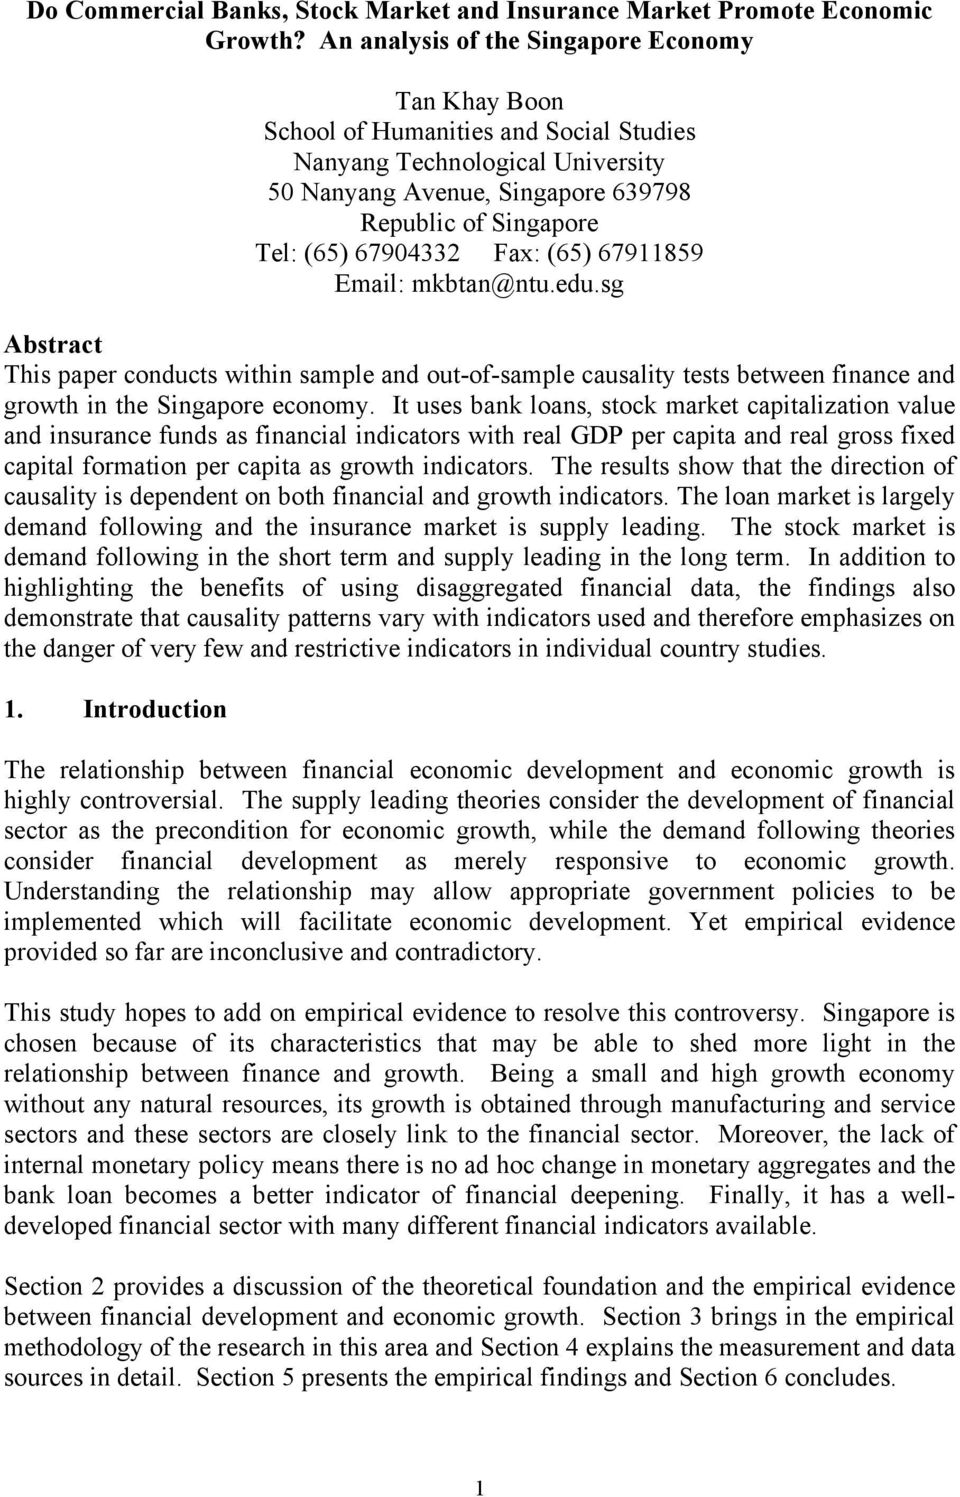 67904332 Fax: (65) 67911859 Email: mkbtan@ntu.edu.sg Abstract This paper conducts within sample and out-of-sample causality tests between finance and growth in the Singapore economy.